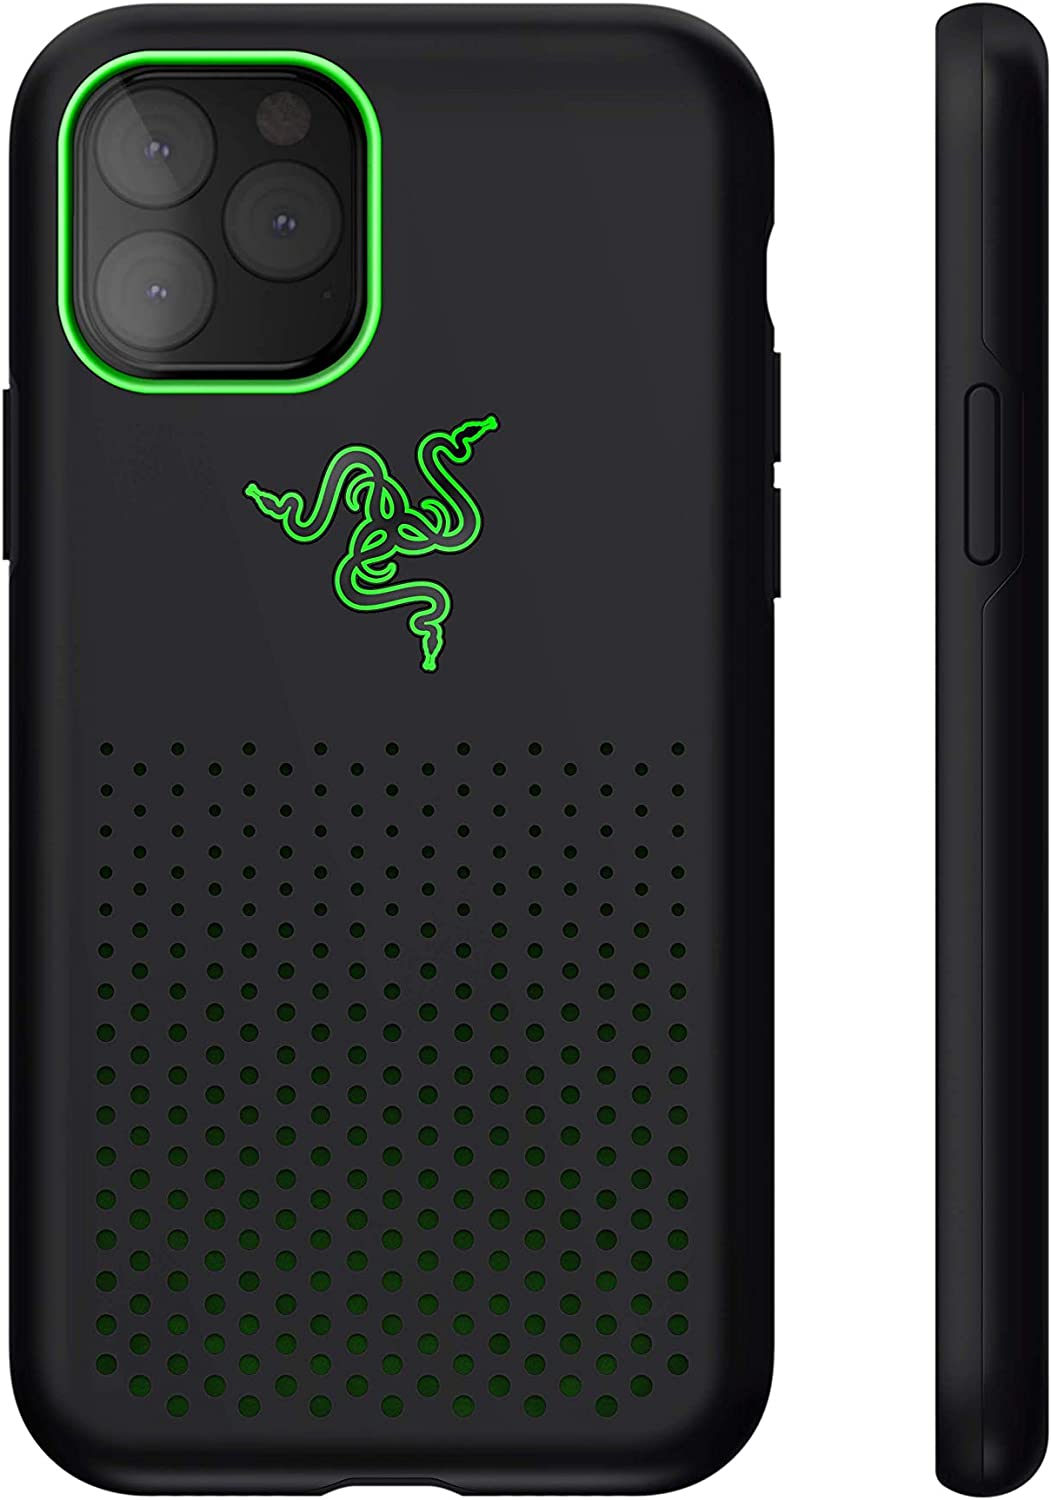 Razer Arctech Pro THS Edition for iPhone 11 Pro Max Case: Thermaphene & Venting Performance Cooling - Wireless Charging Compatible - Drop-Test Certified up to 10 ft - Matte Black